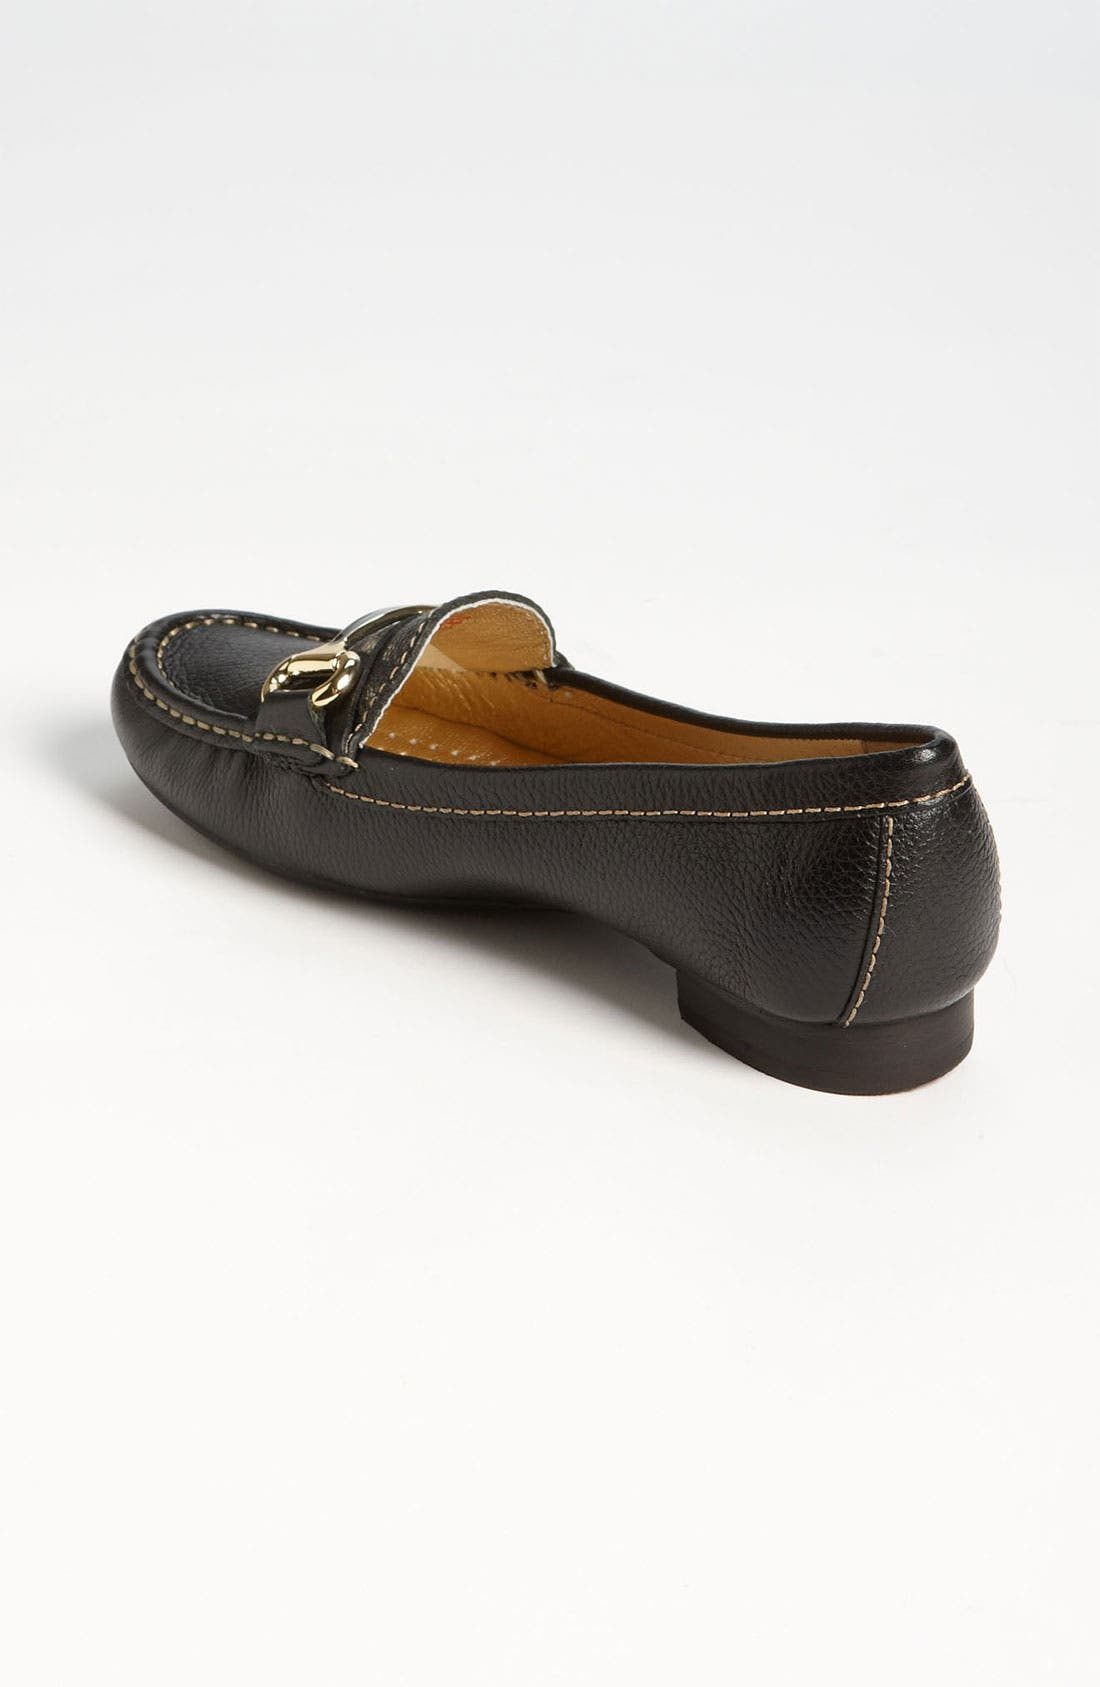 MARC JOSEPH NEW YORK, 'Grand St.' Loafer, Alternate thumbnail 3, color, BLACK GRAINY